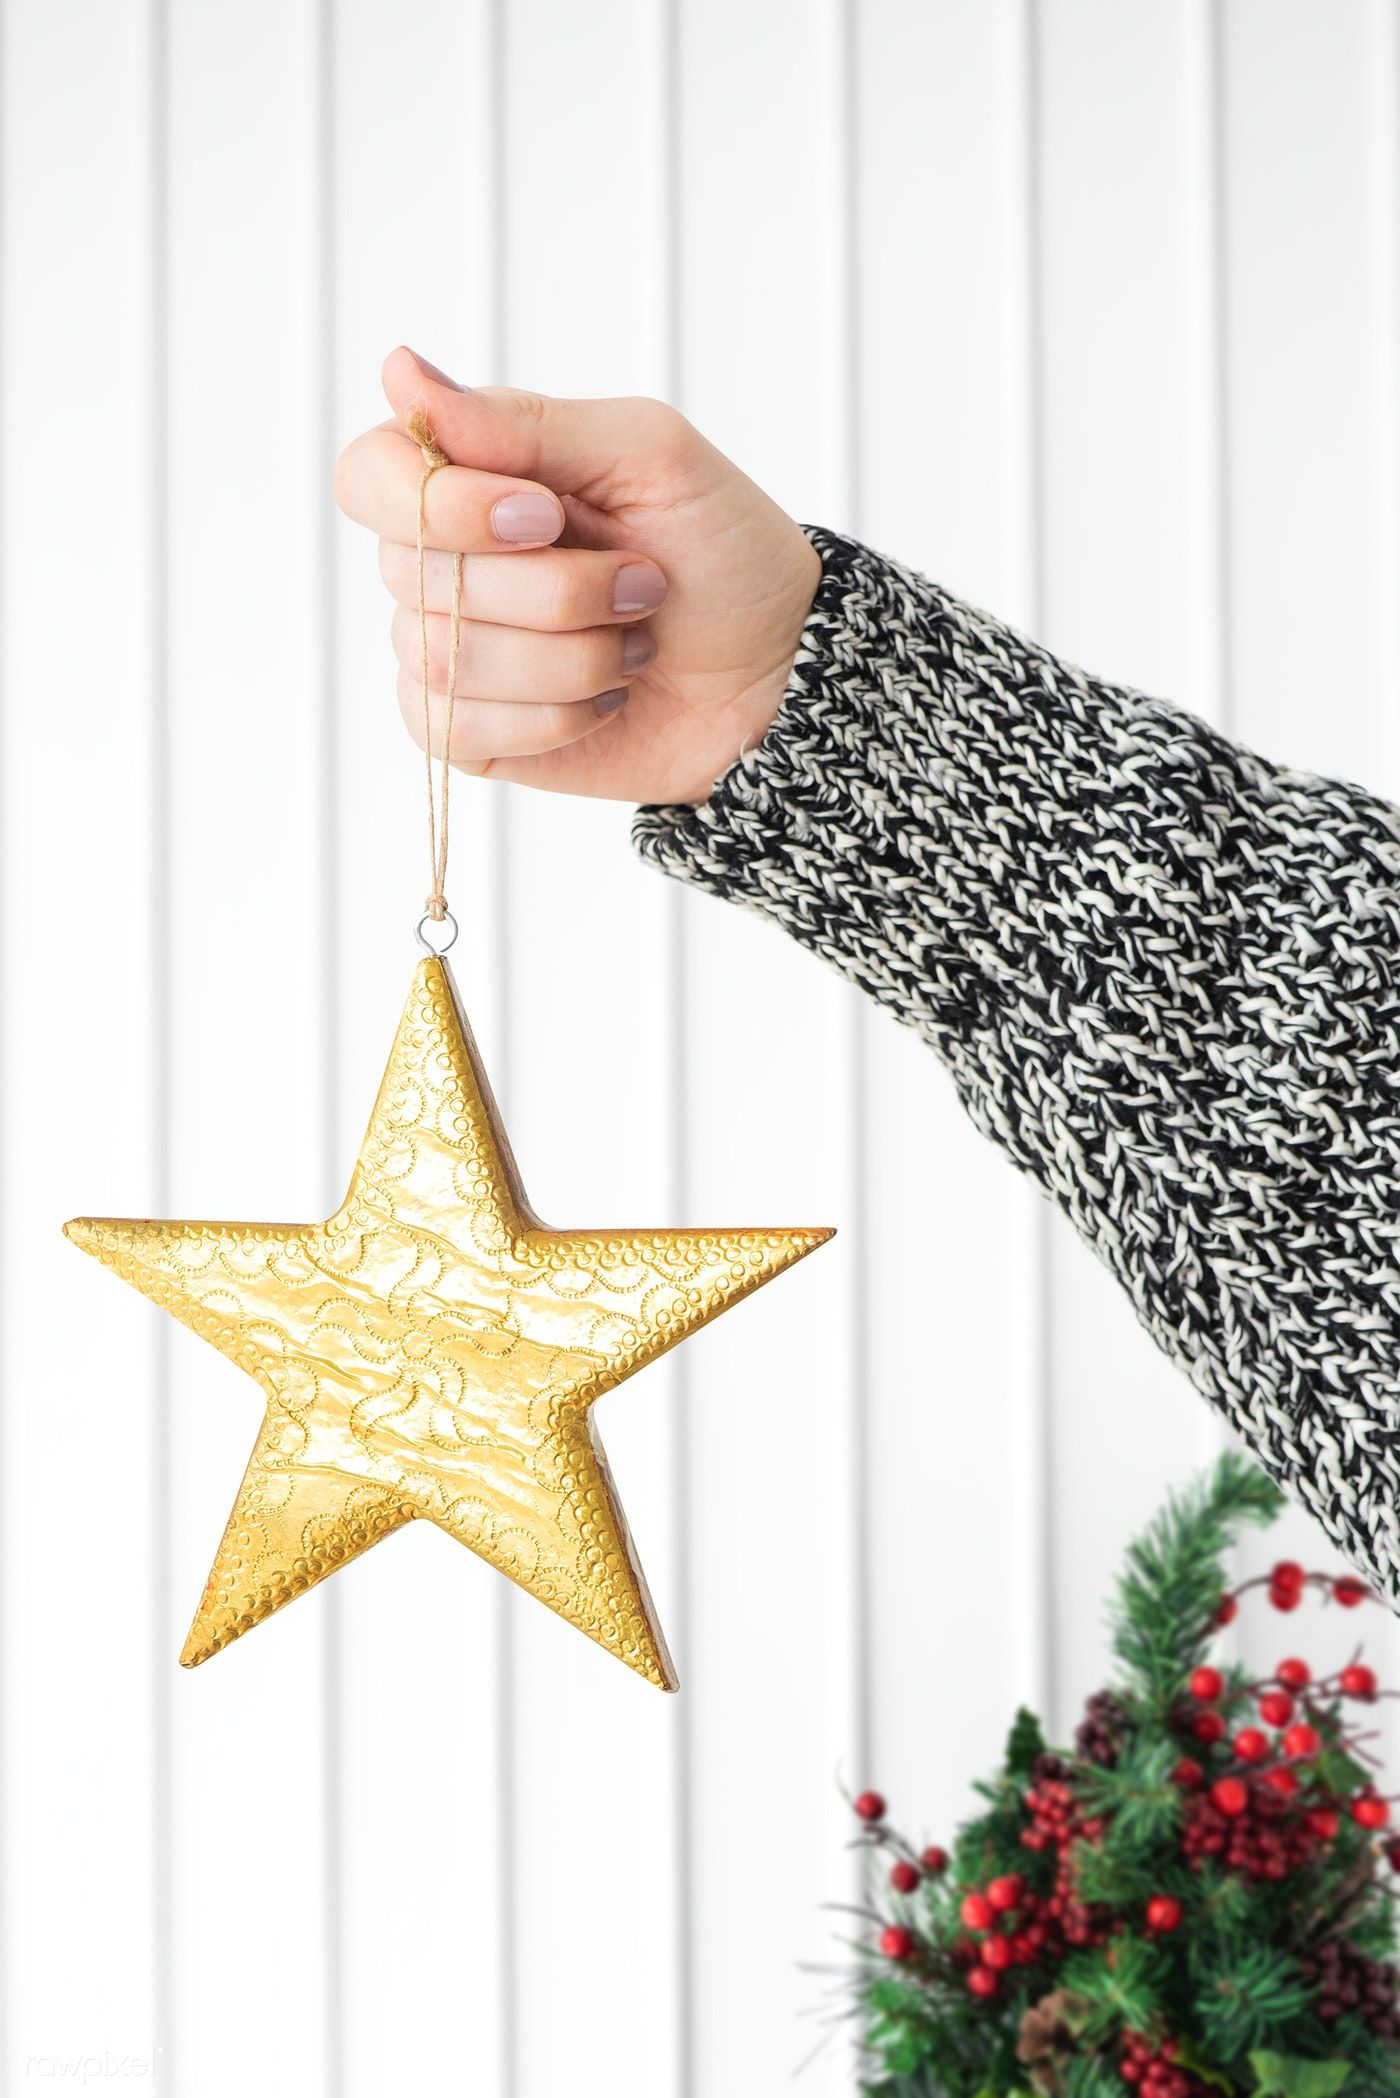 Download Premium Psd Of Woman Holding A Glittery Gold Star Christmas Christmas Pattern Background Gold Stars Christmas Tree With Presents